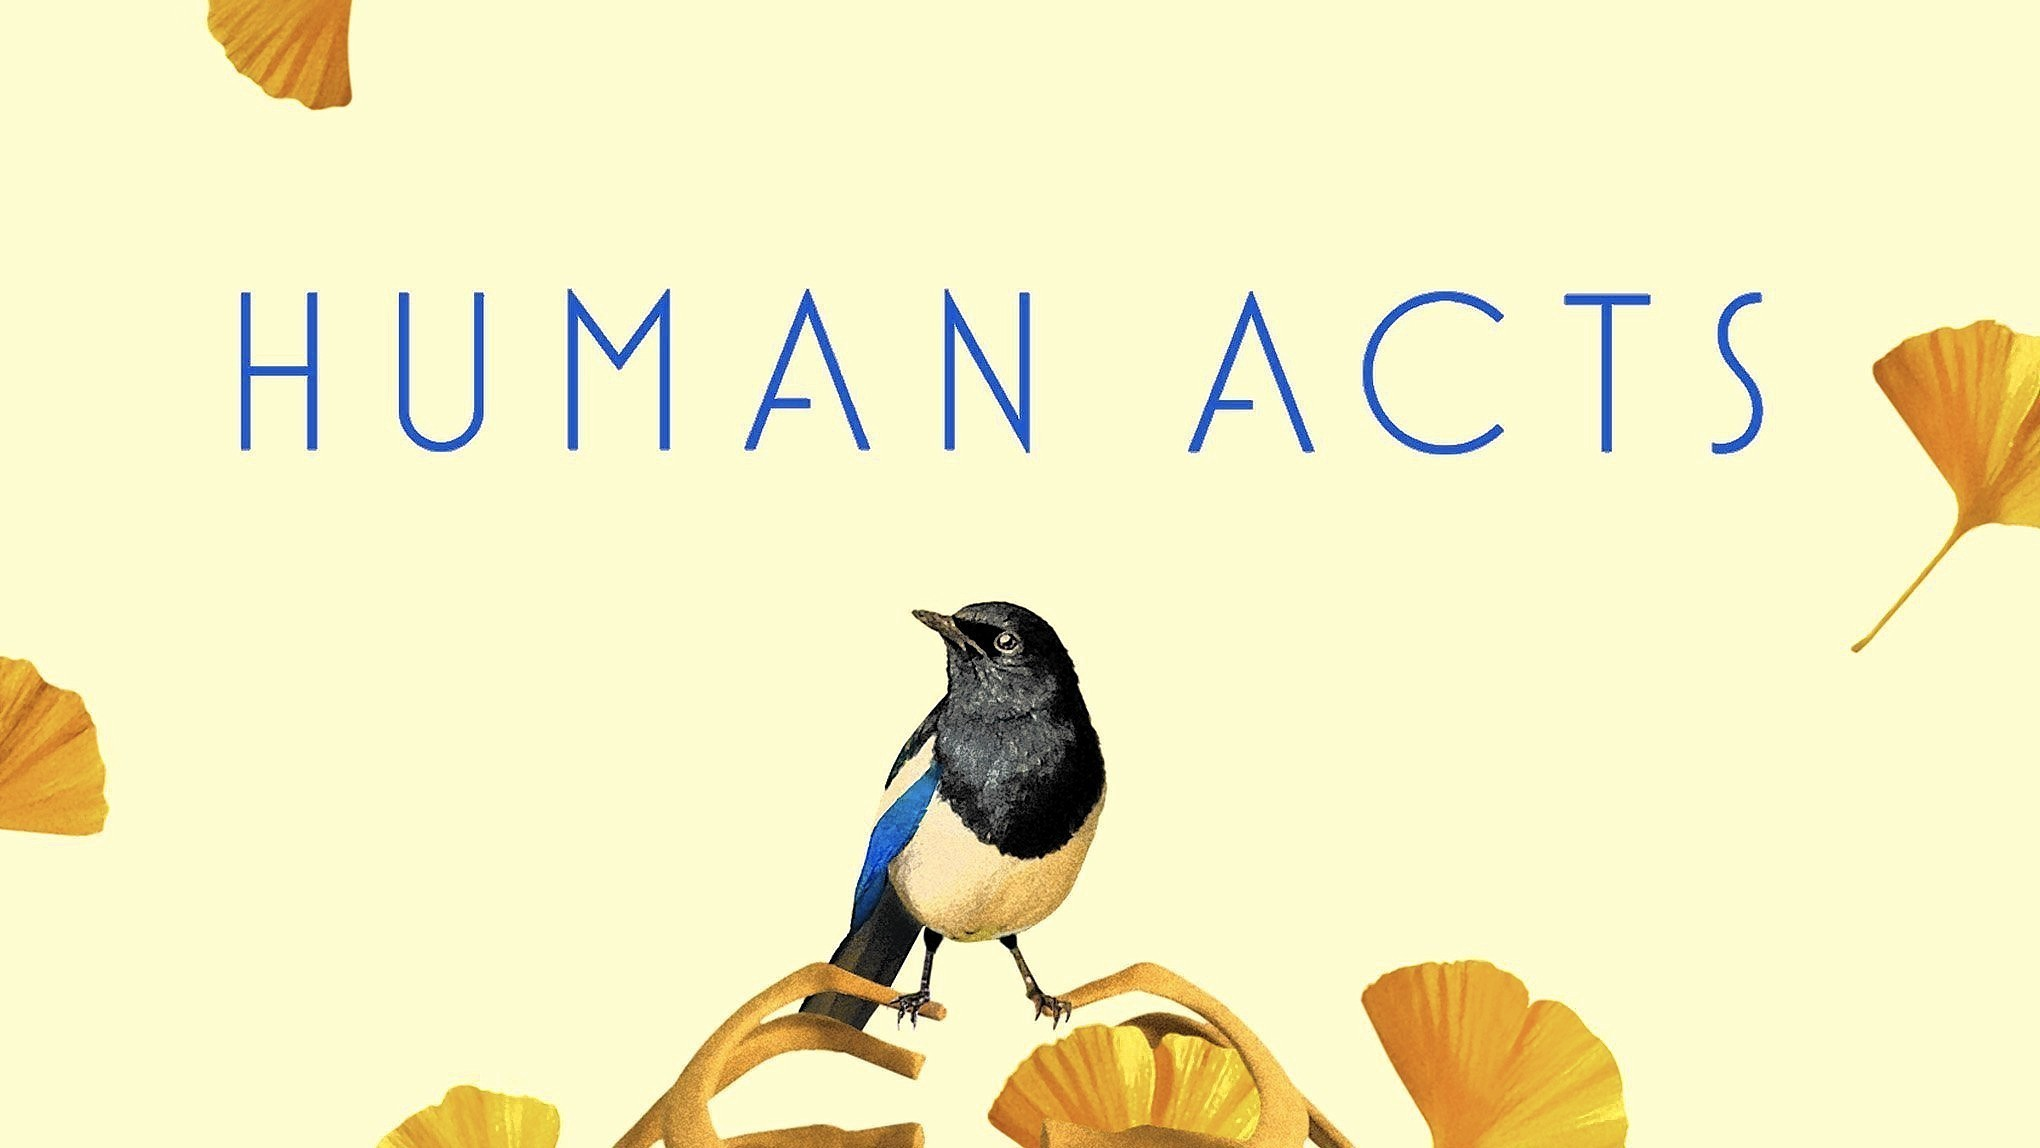 How different is human acts from acts of man?